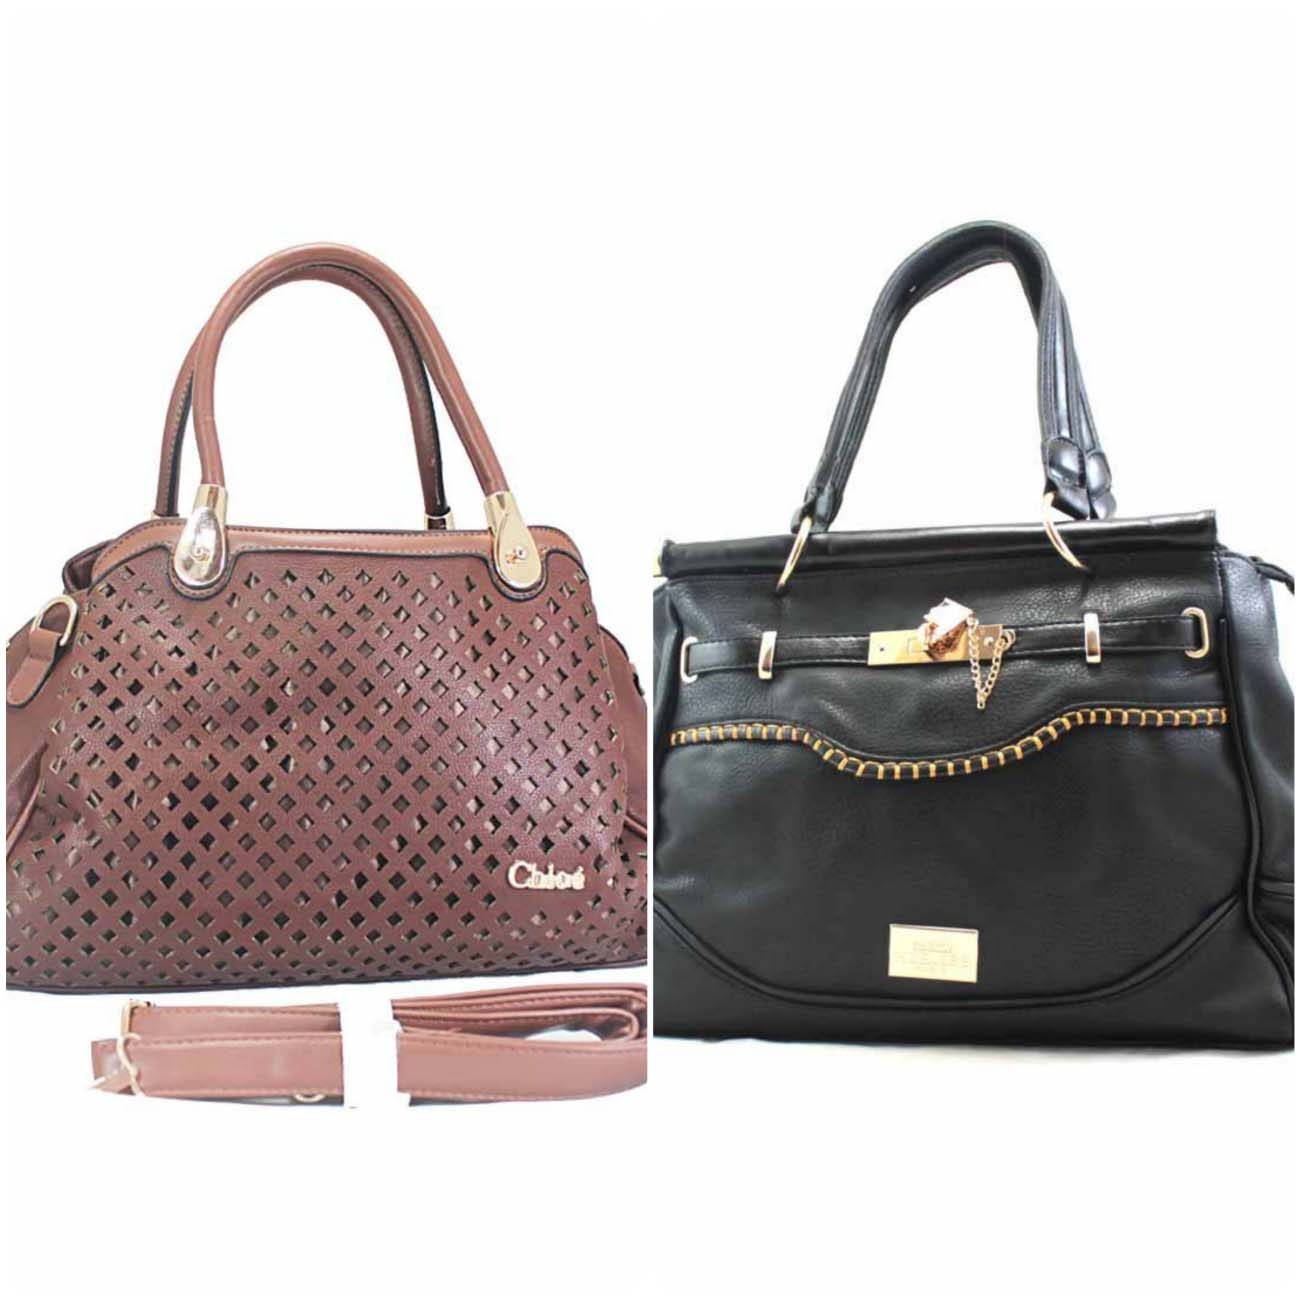 30604635a5ef Latest Stylish HandBags And Clutches Collection For Women By BnB Accessories…styloplanet  (7)